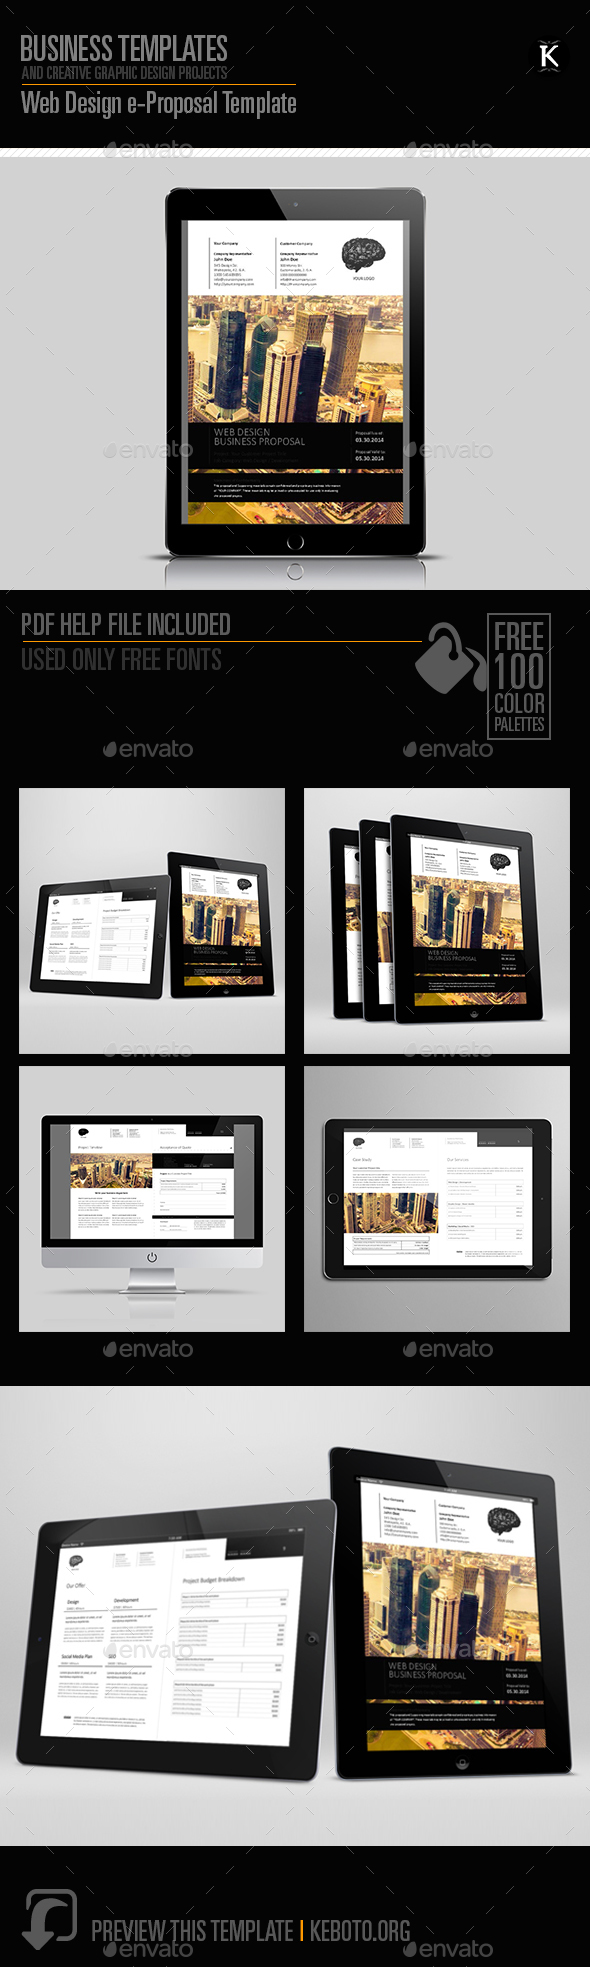 Web Design e-Proposal Template - ePublishing